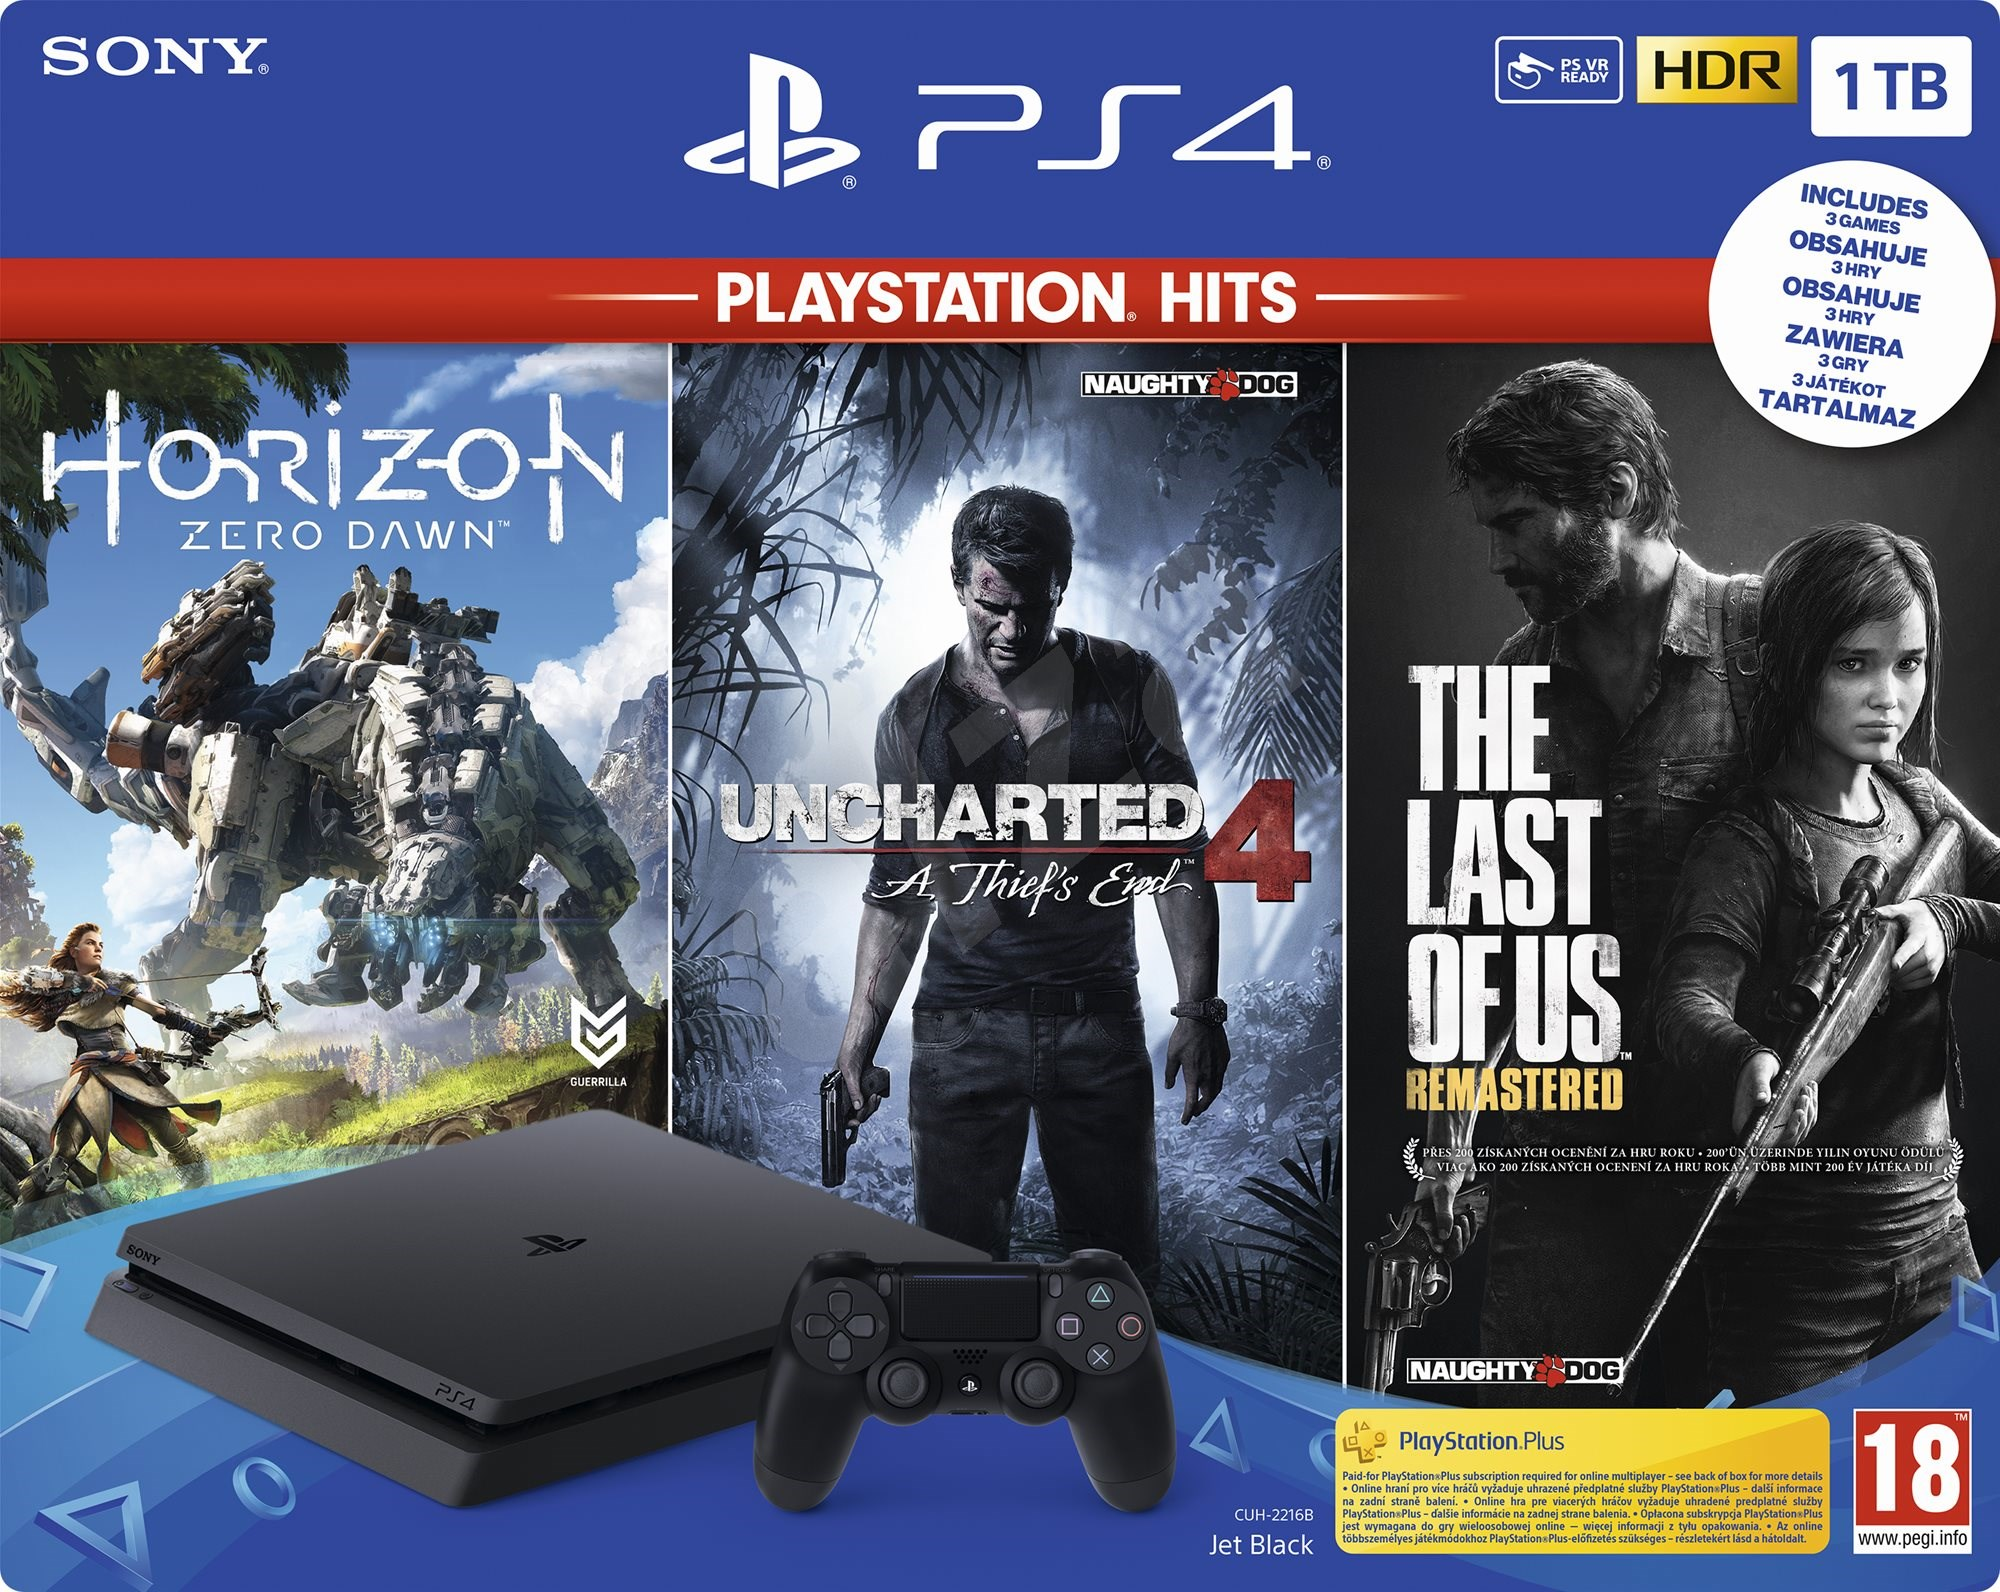 Sony PlayStation 4 Slim 1TB Playstation HITS Horizon Zero Dawn + The Last of Us + Uncharted 4 Bundle